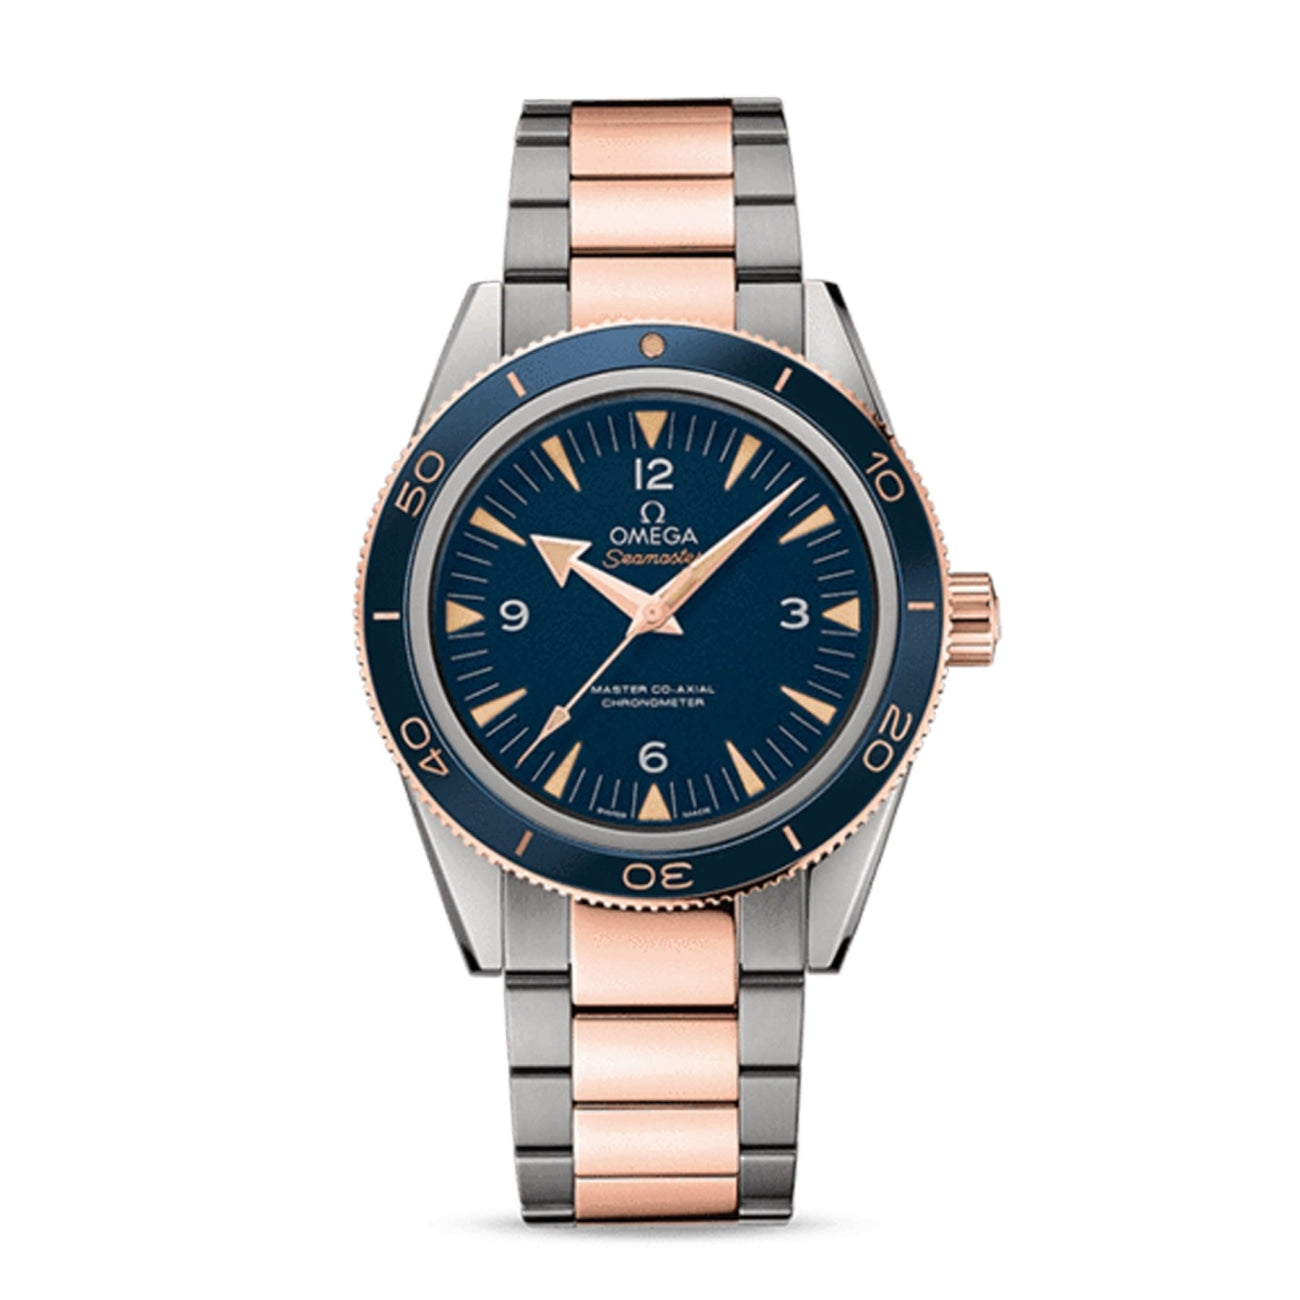 Omega Watches - Seamaster Seamaster 300 Omega Master Co-Axial 41 Mm | Manfredi Jewels